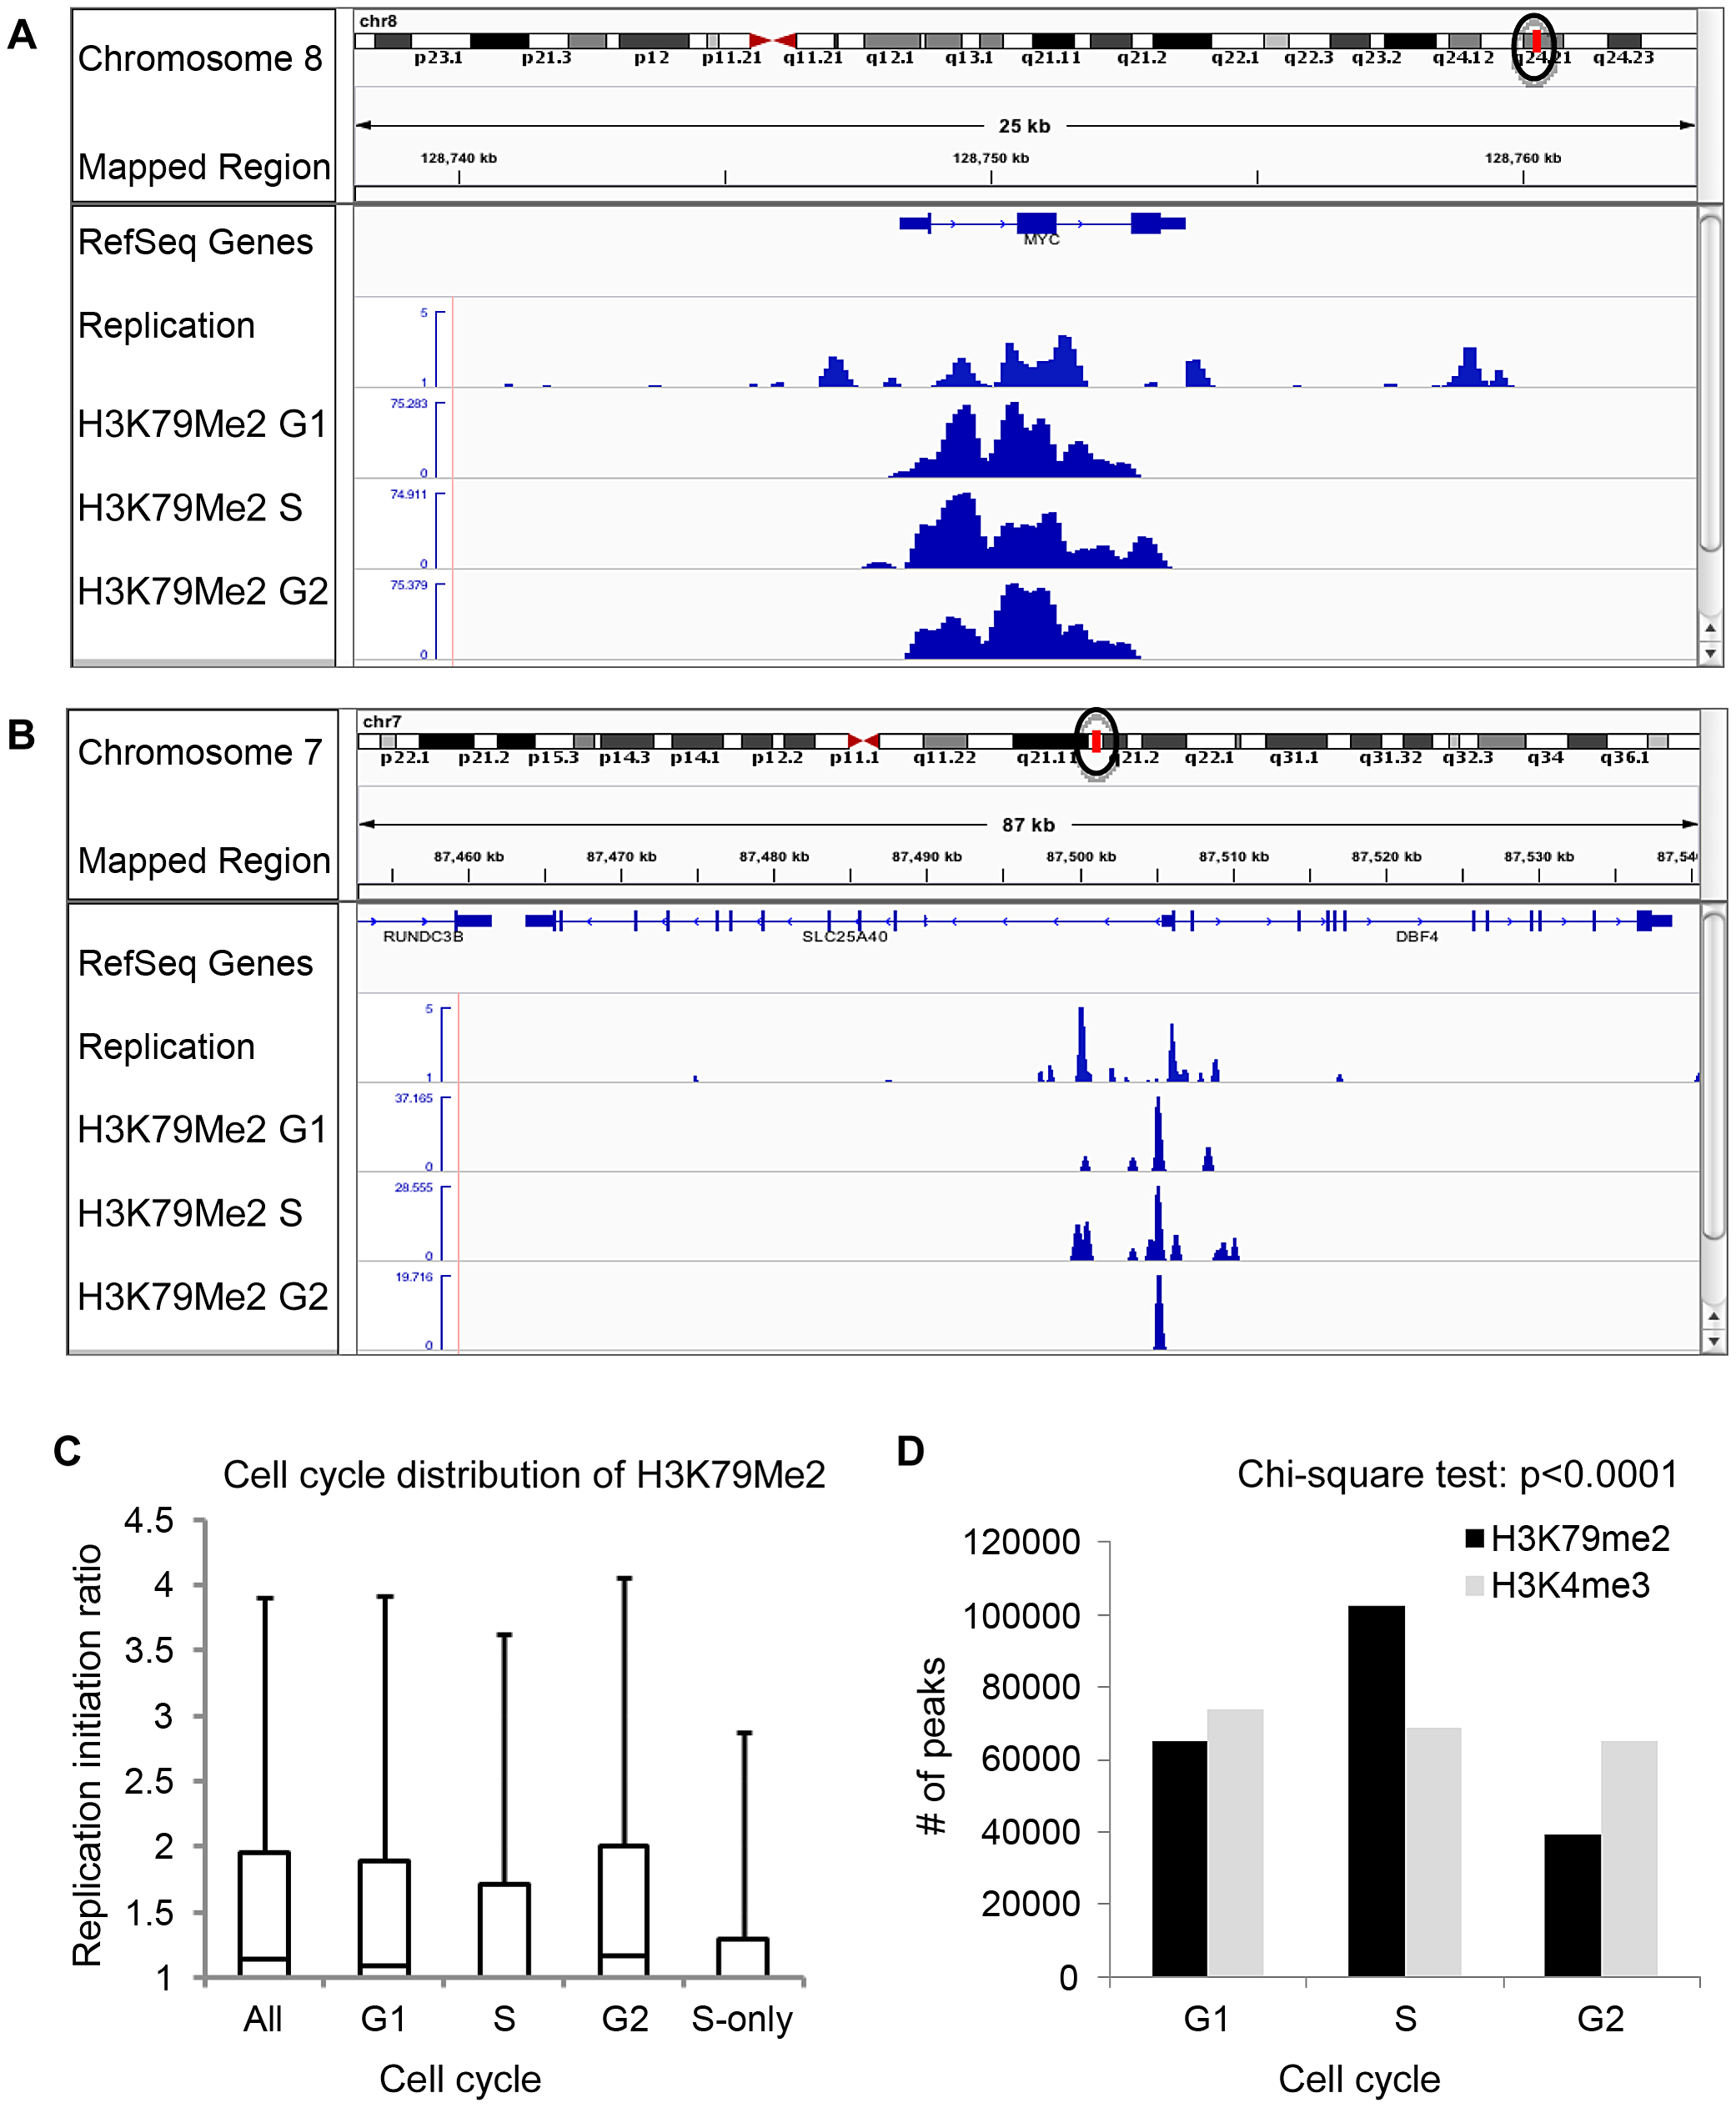 Preferential enrichment of initiation events in H3K79Me2 containing chromatin at the G1 and G2 phases of the cell cycle.